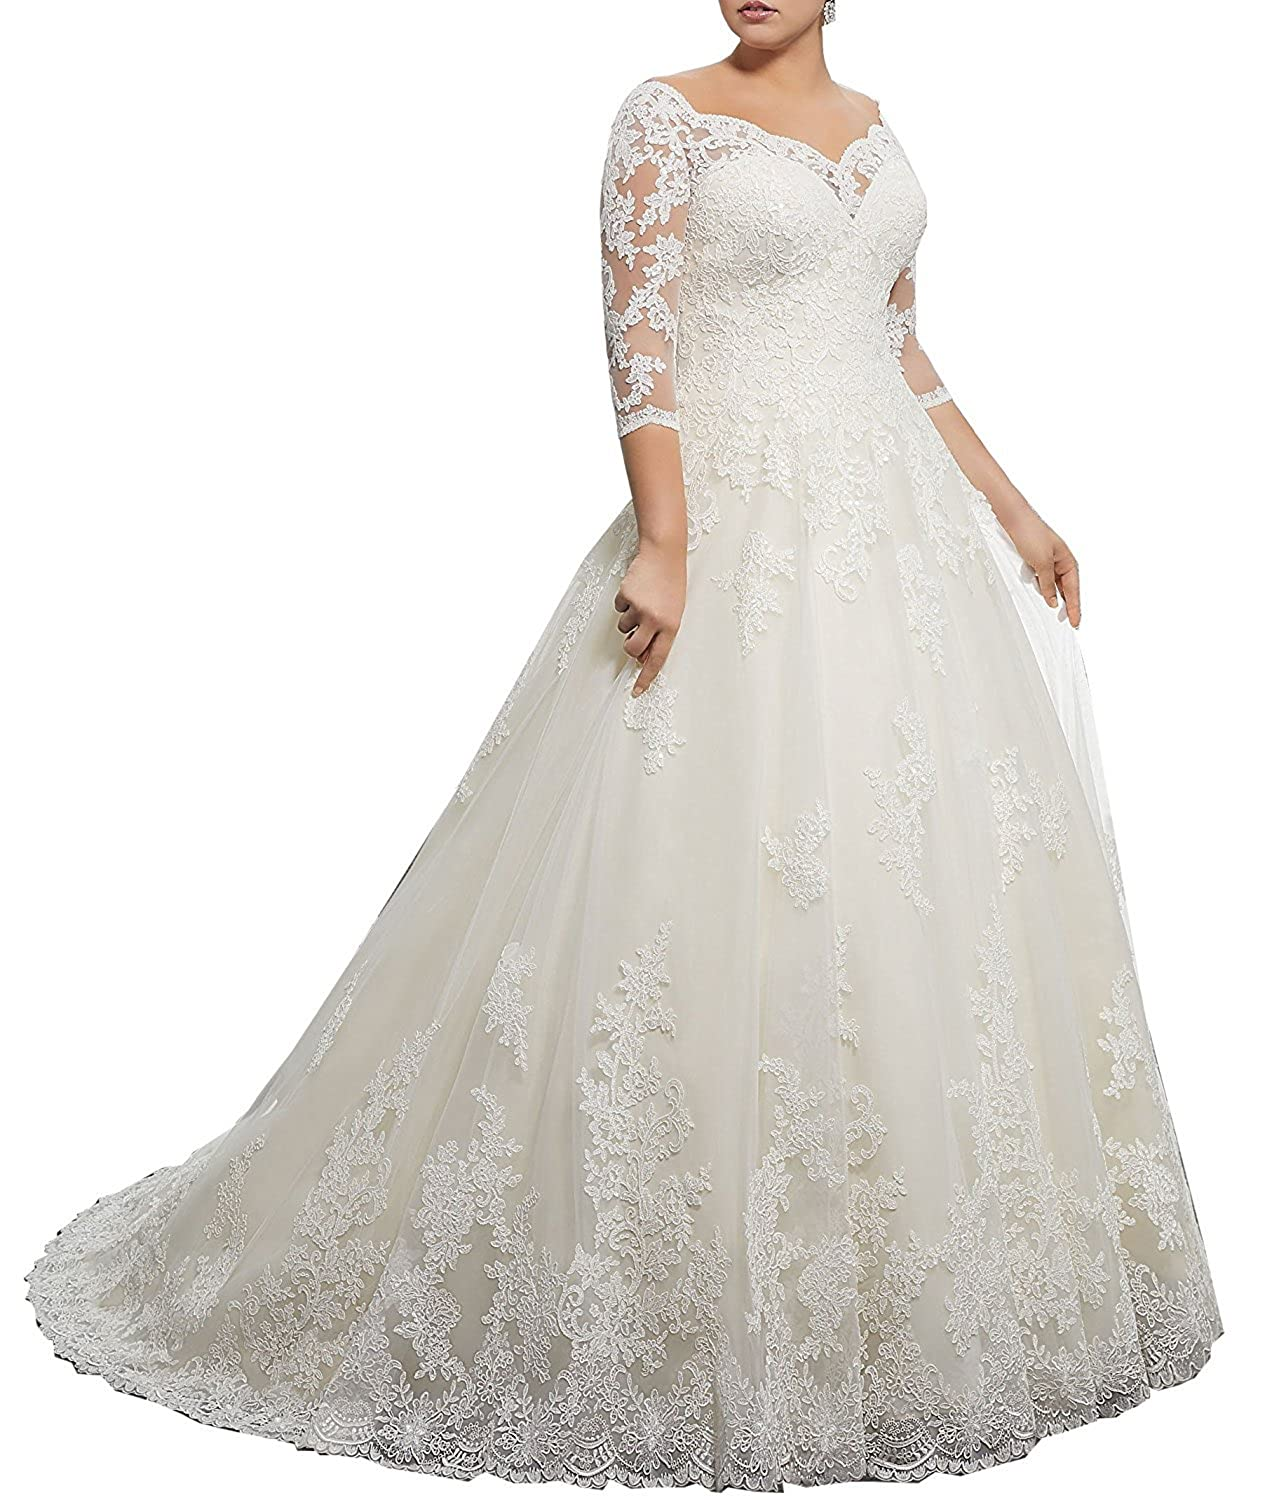 Meledy Women's Vneck Bridal Gown Trains Lace Sleeves Plus Size Wedding Dress At Amazon Clothing Store: Plus Size Wedding Dress Trains At Reisefeber.org